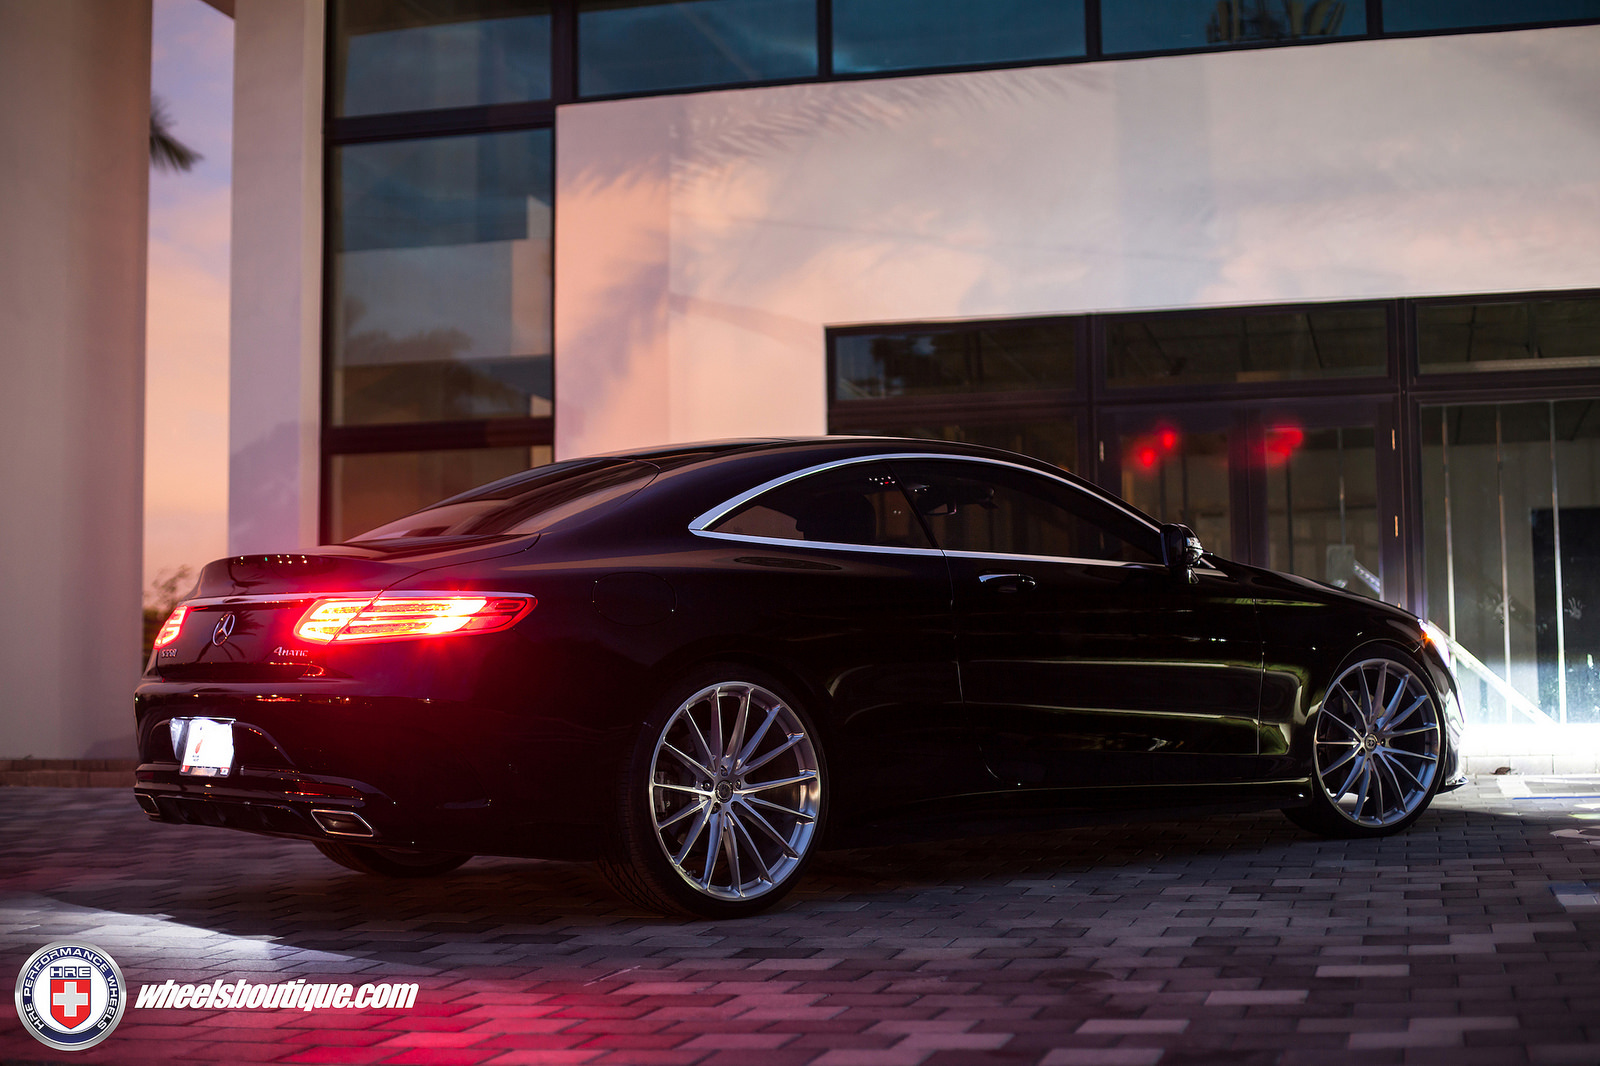 Mercedes benz s class custom wheels hre p103 22x9 0 et for Mercedes benz tire sizes